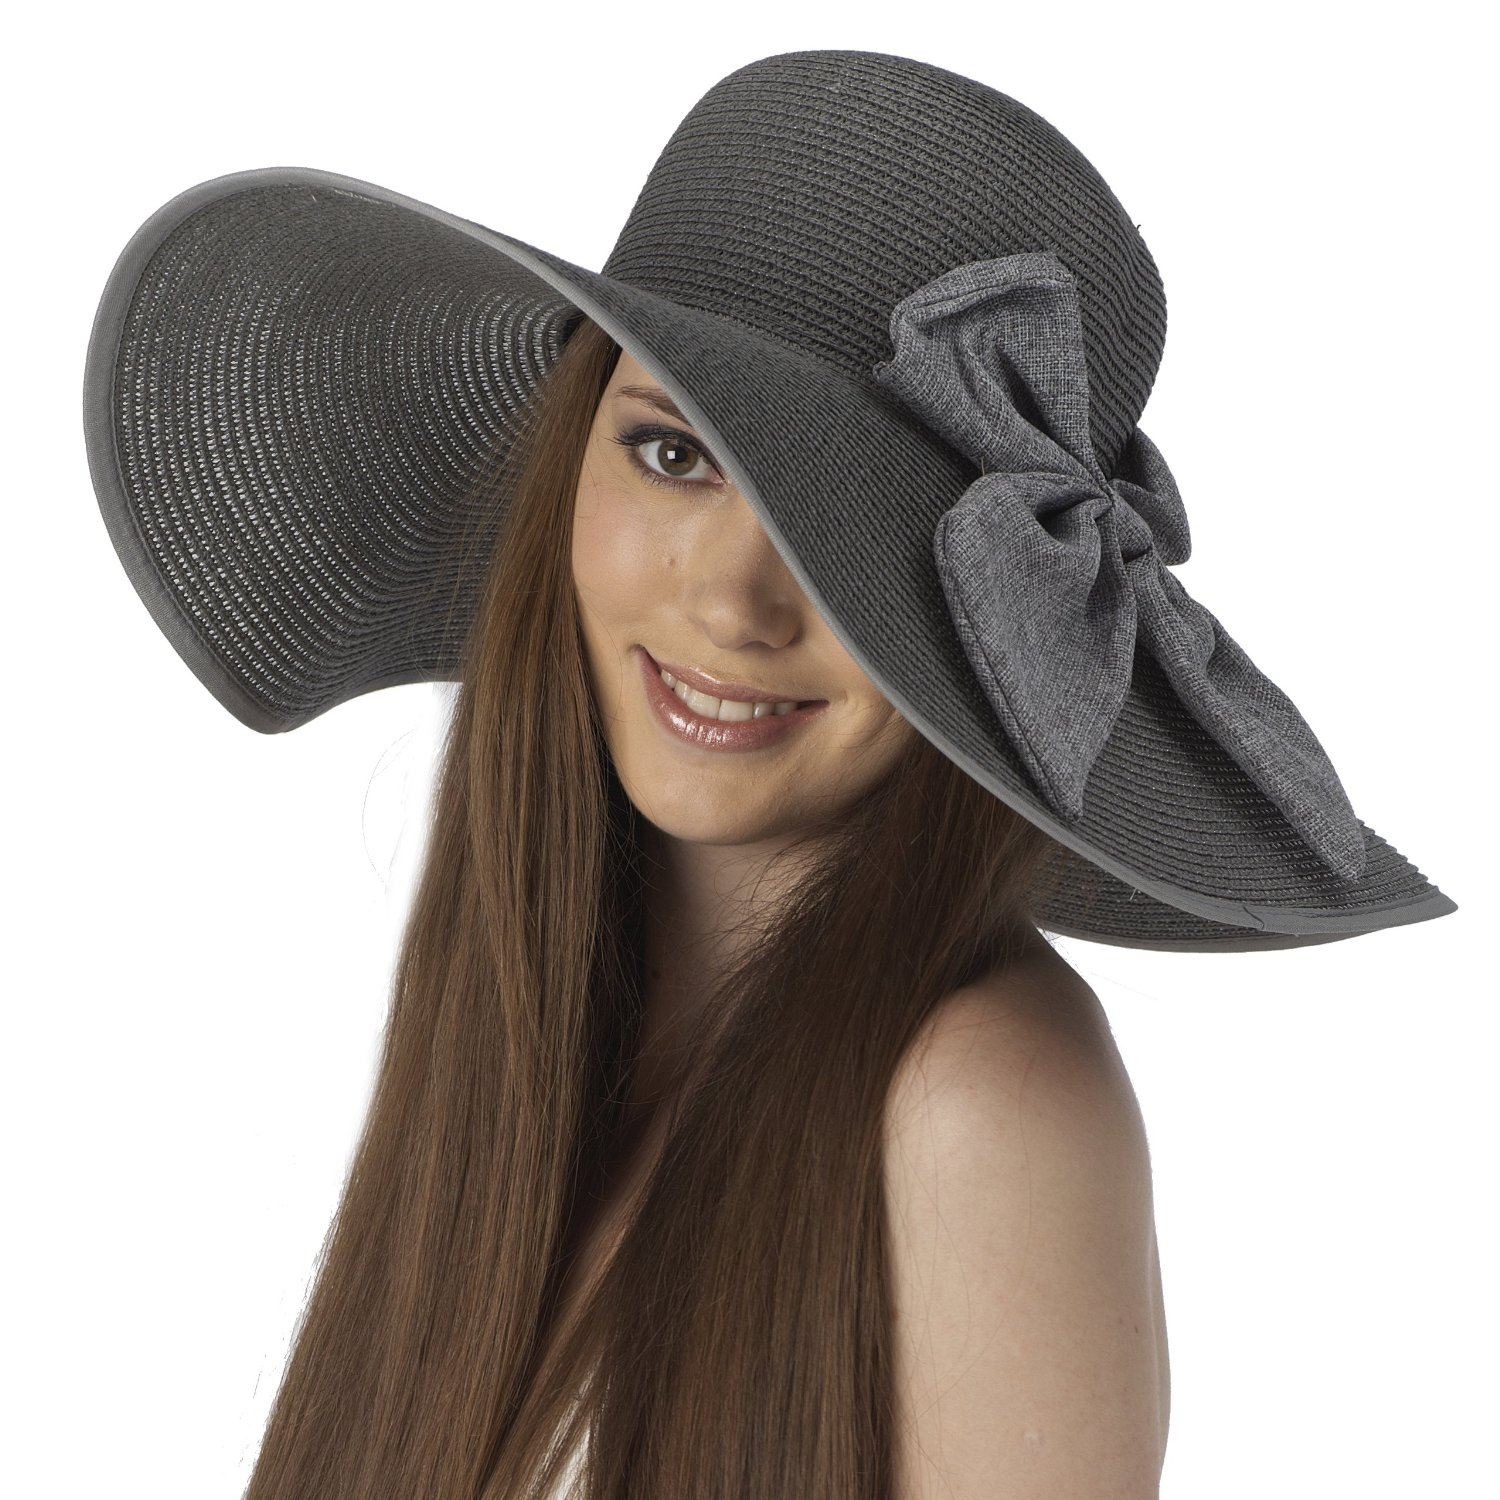 The Bali Ribbon Beach Hat is an oversized cotton/twill reversable beach hat. Featuring a